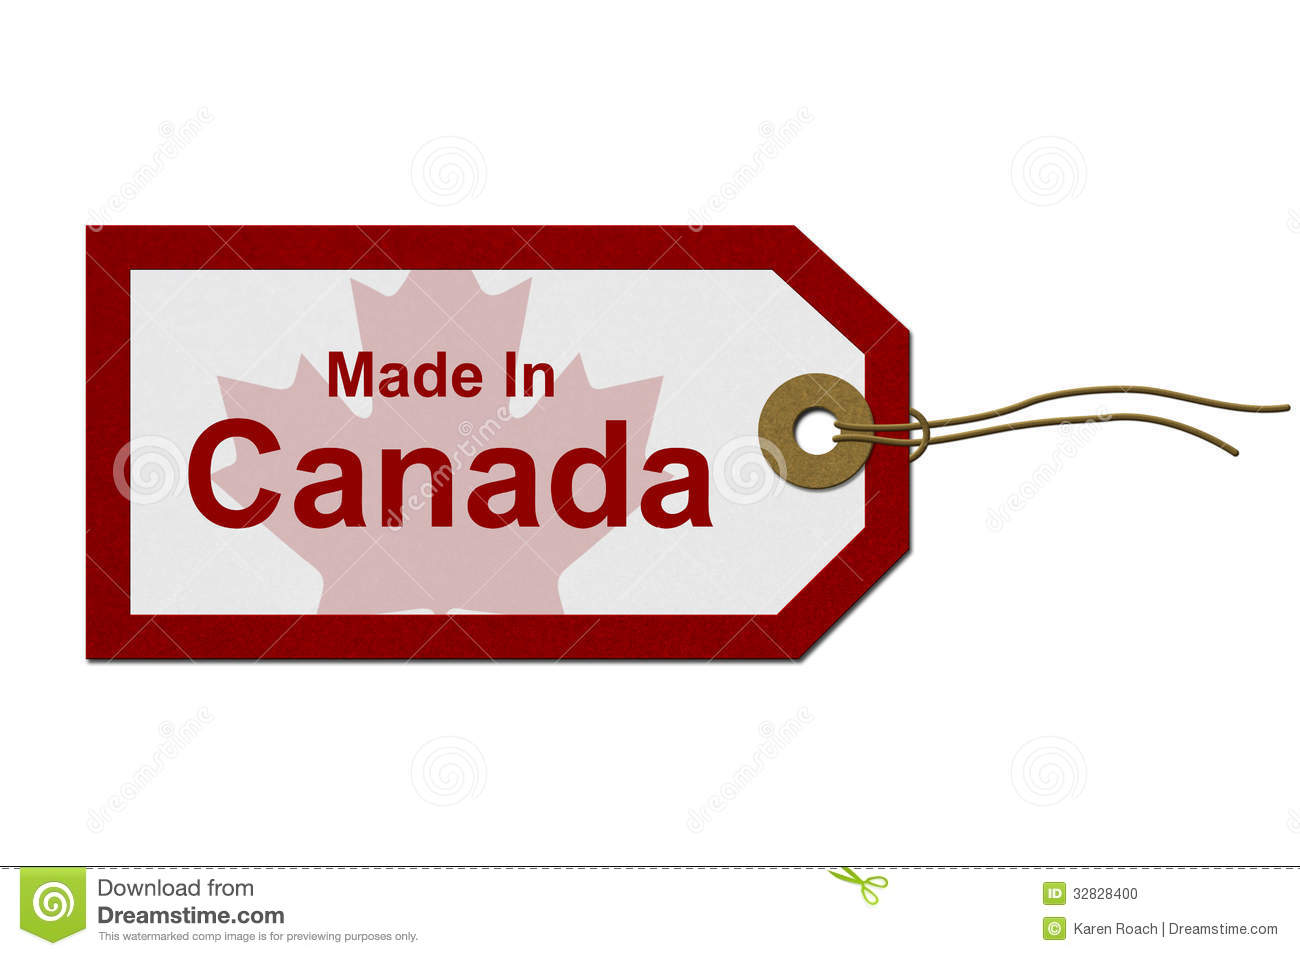 Where To Buy Nature Made Products In Canada